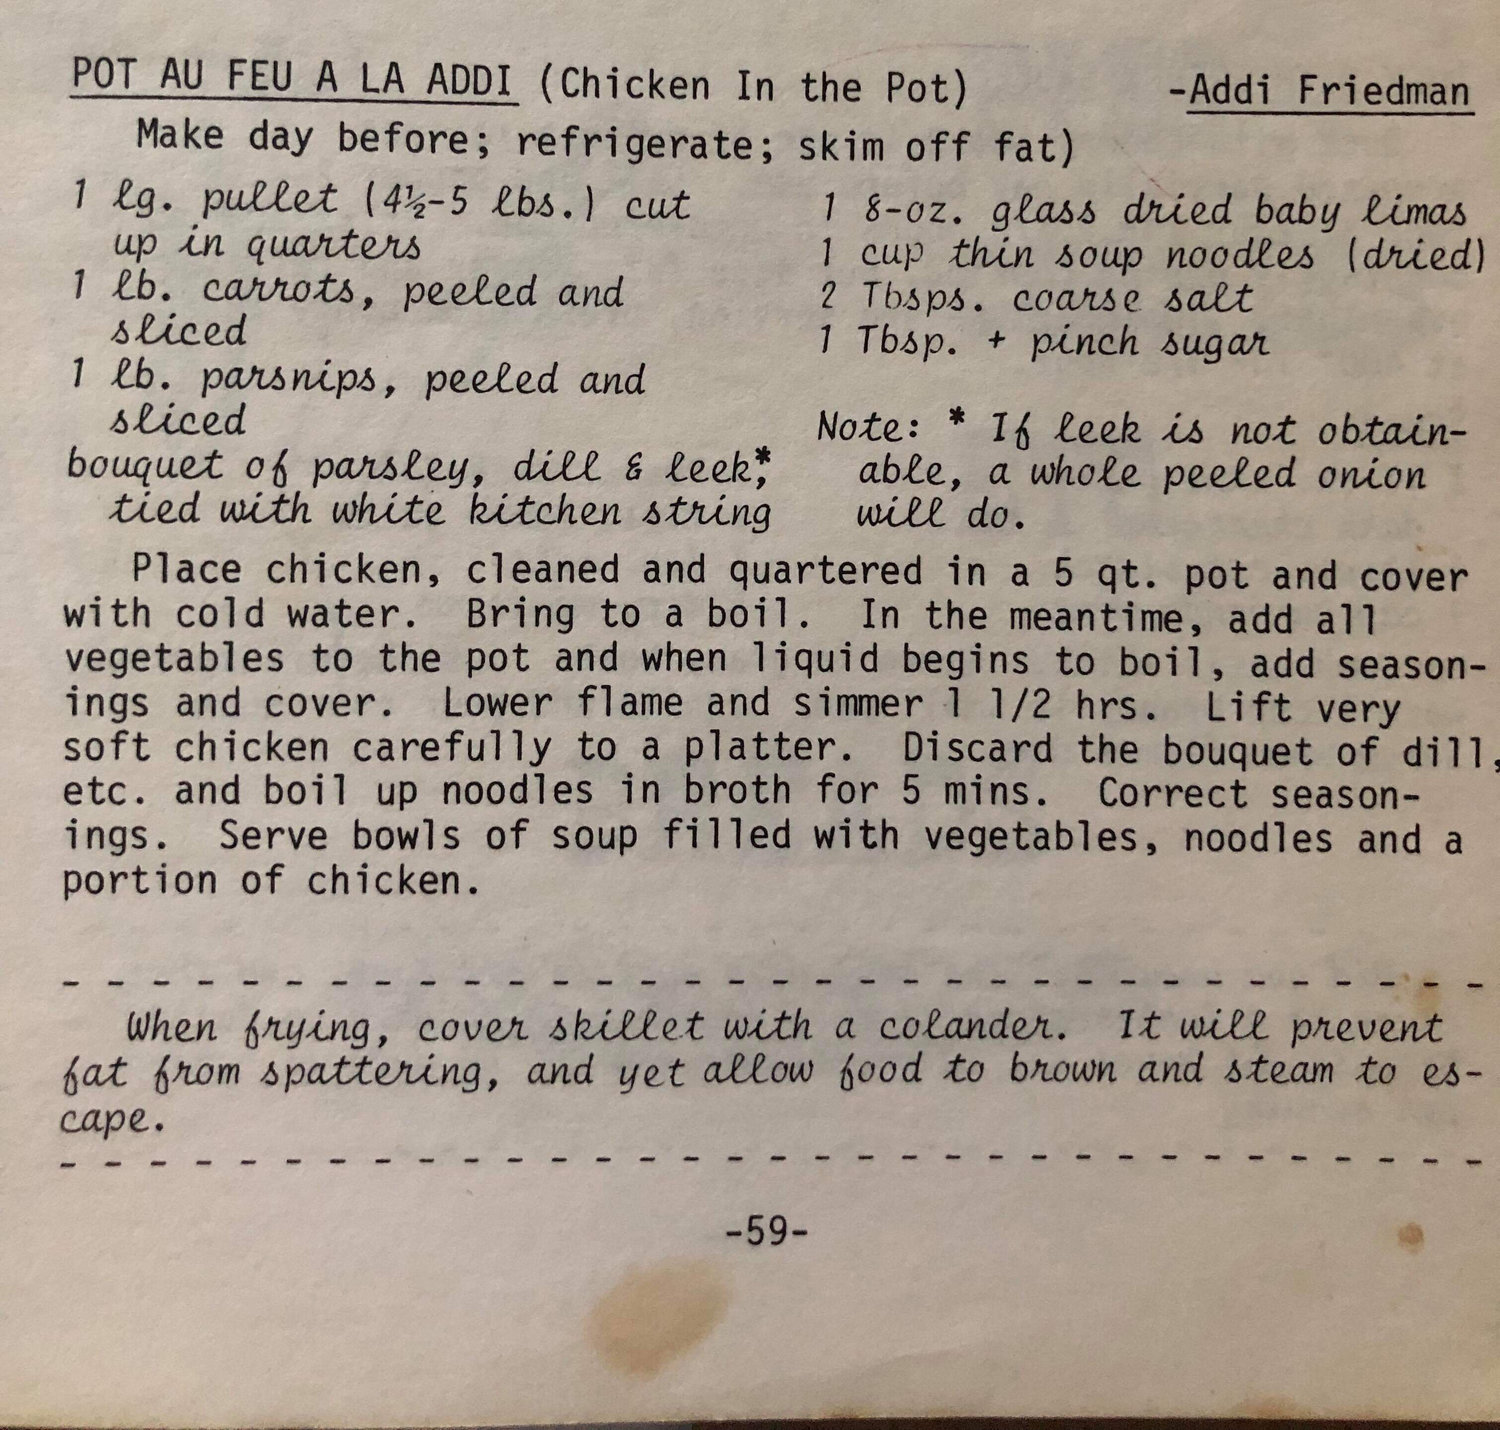 Adelaide Friedman's recipe for Pot Au Feu La Addi that she contributed to a Temple Hillel collection of homemade meals.